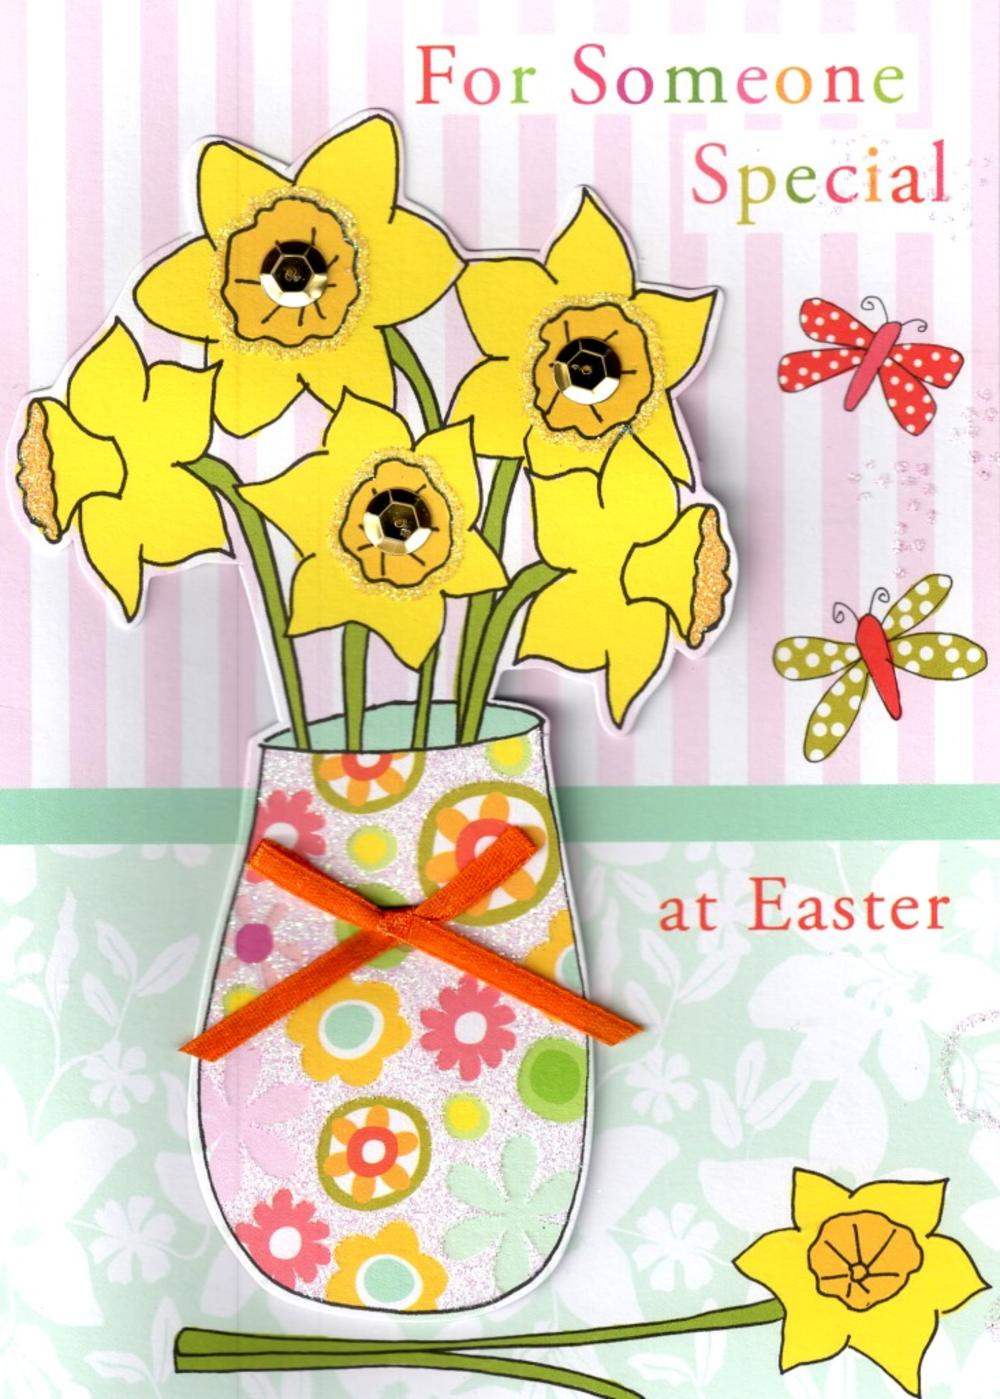 Someone Special At Easter Daffodils Card